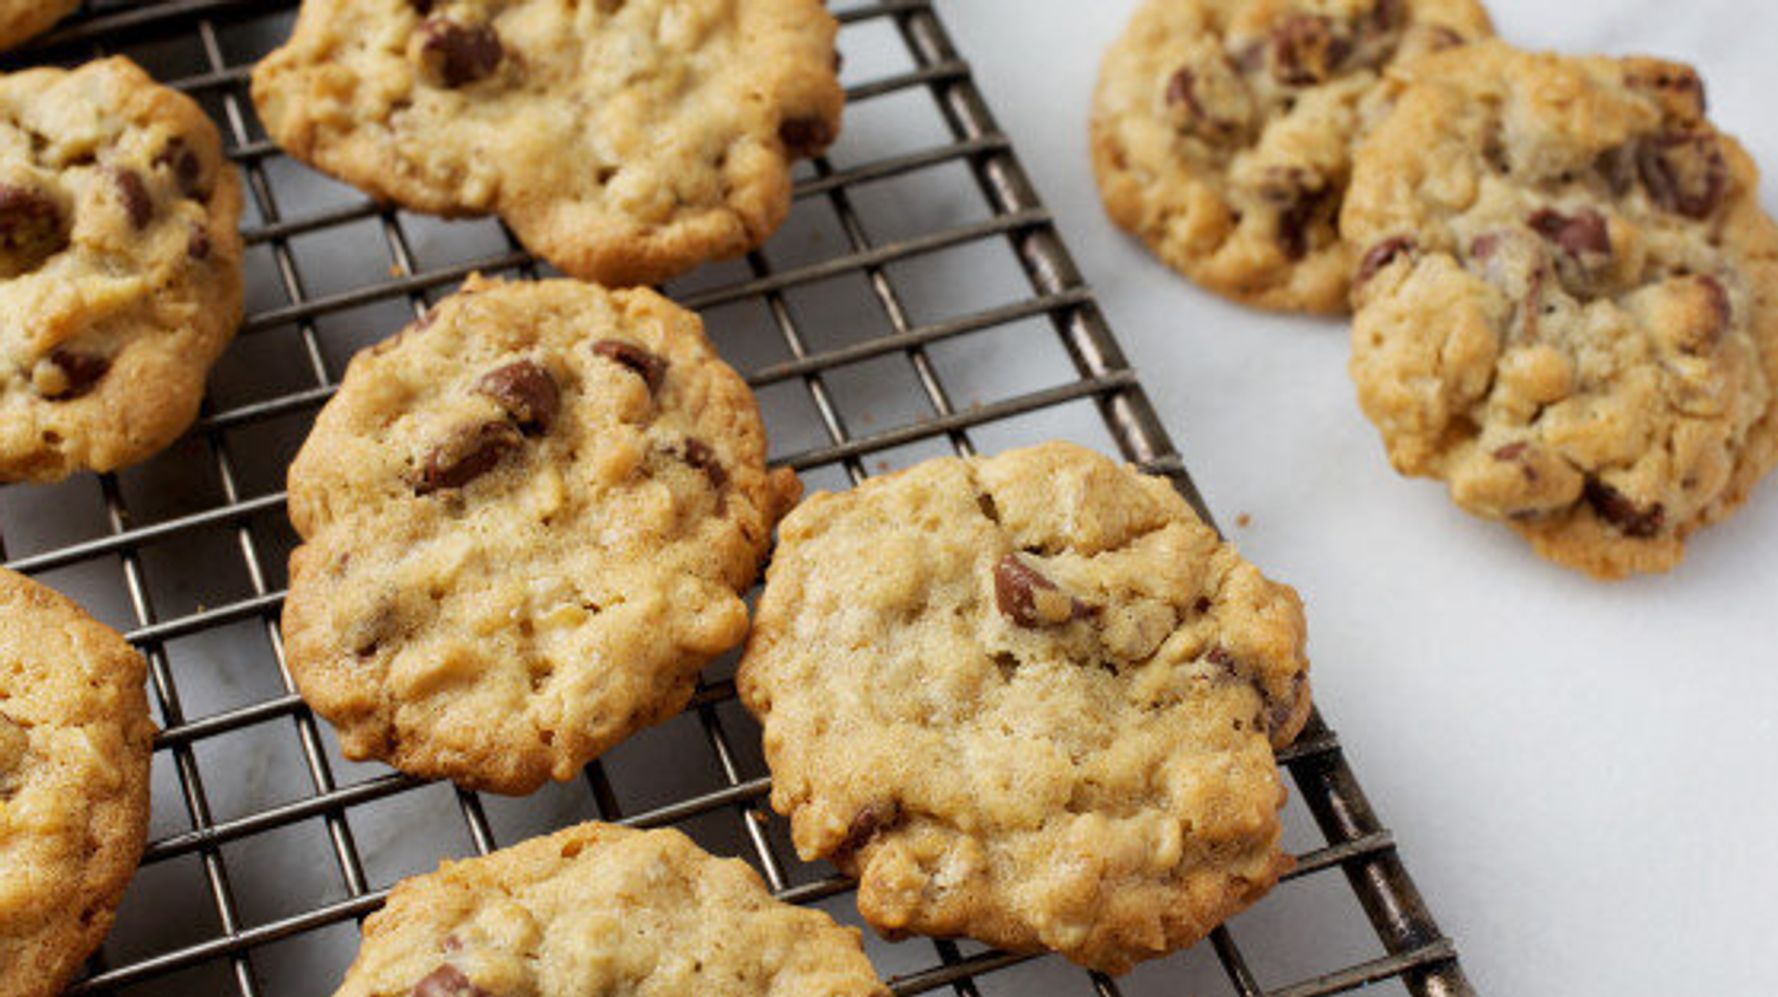 Top 10 Chocolate Chip Recipes For National Chocolate Chip Day